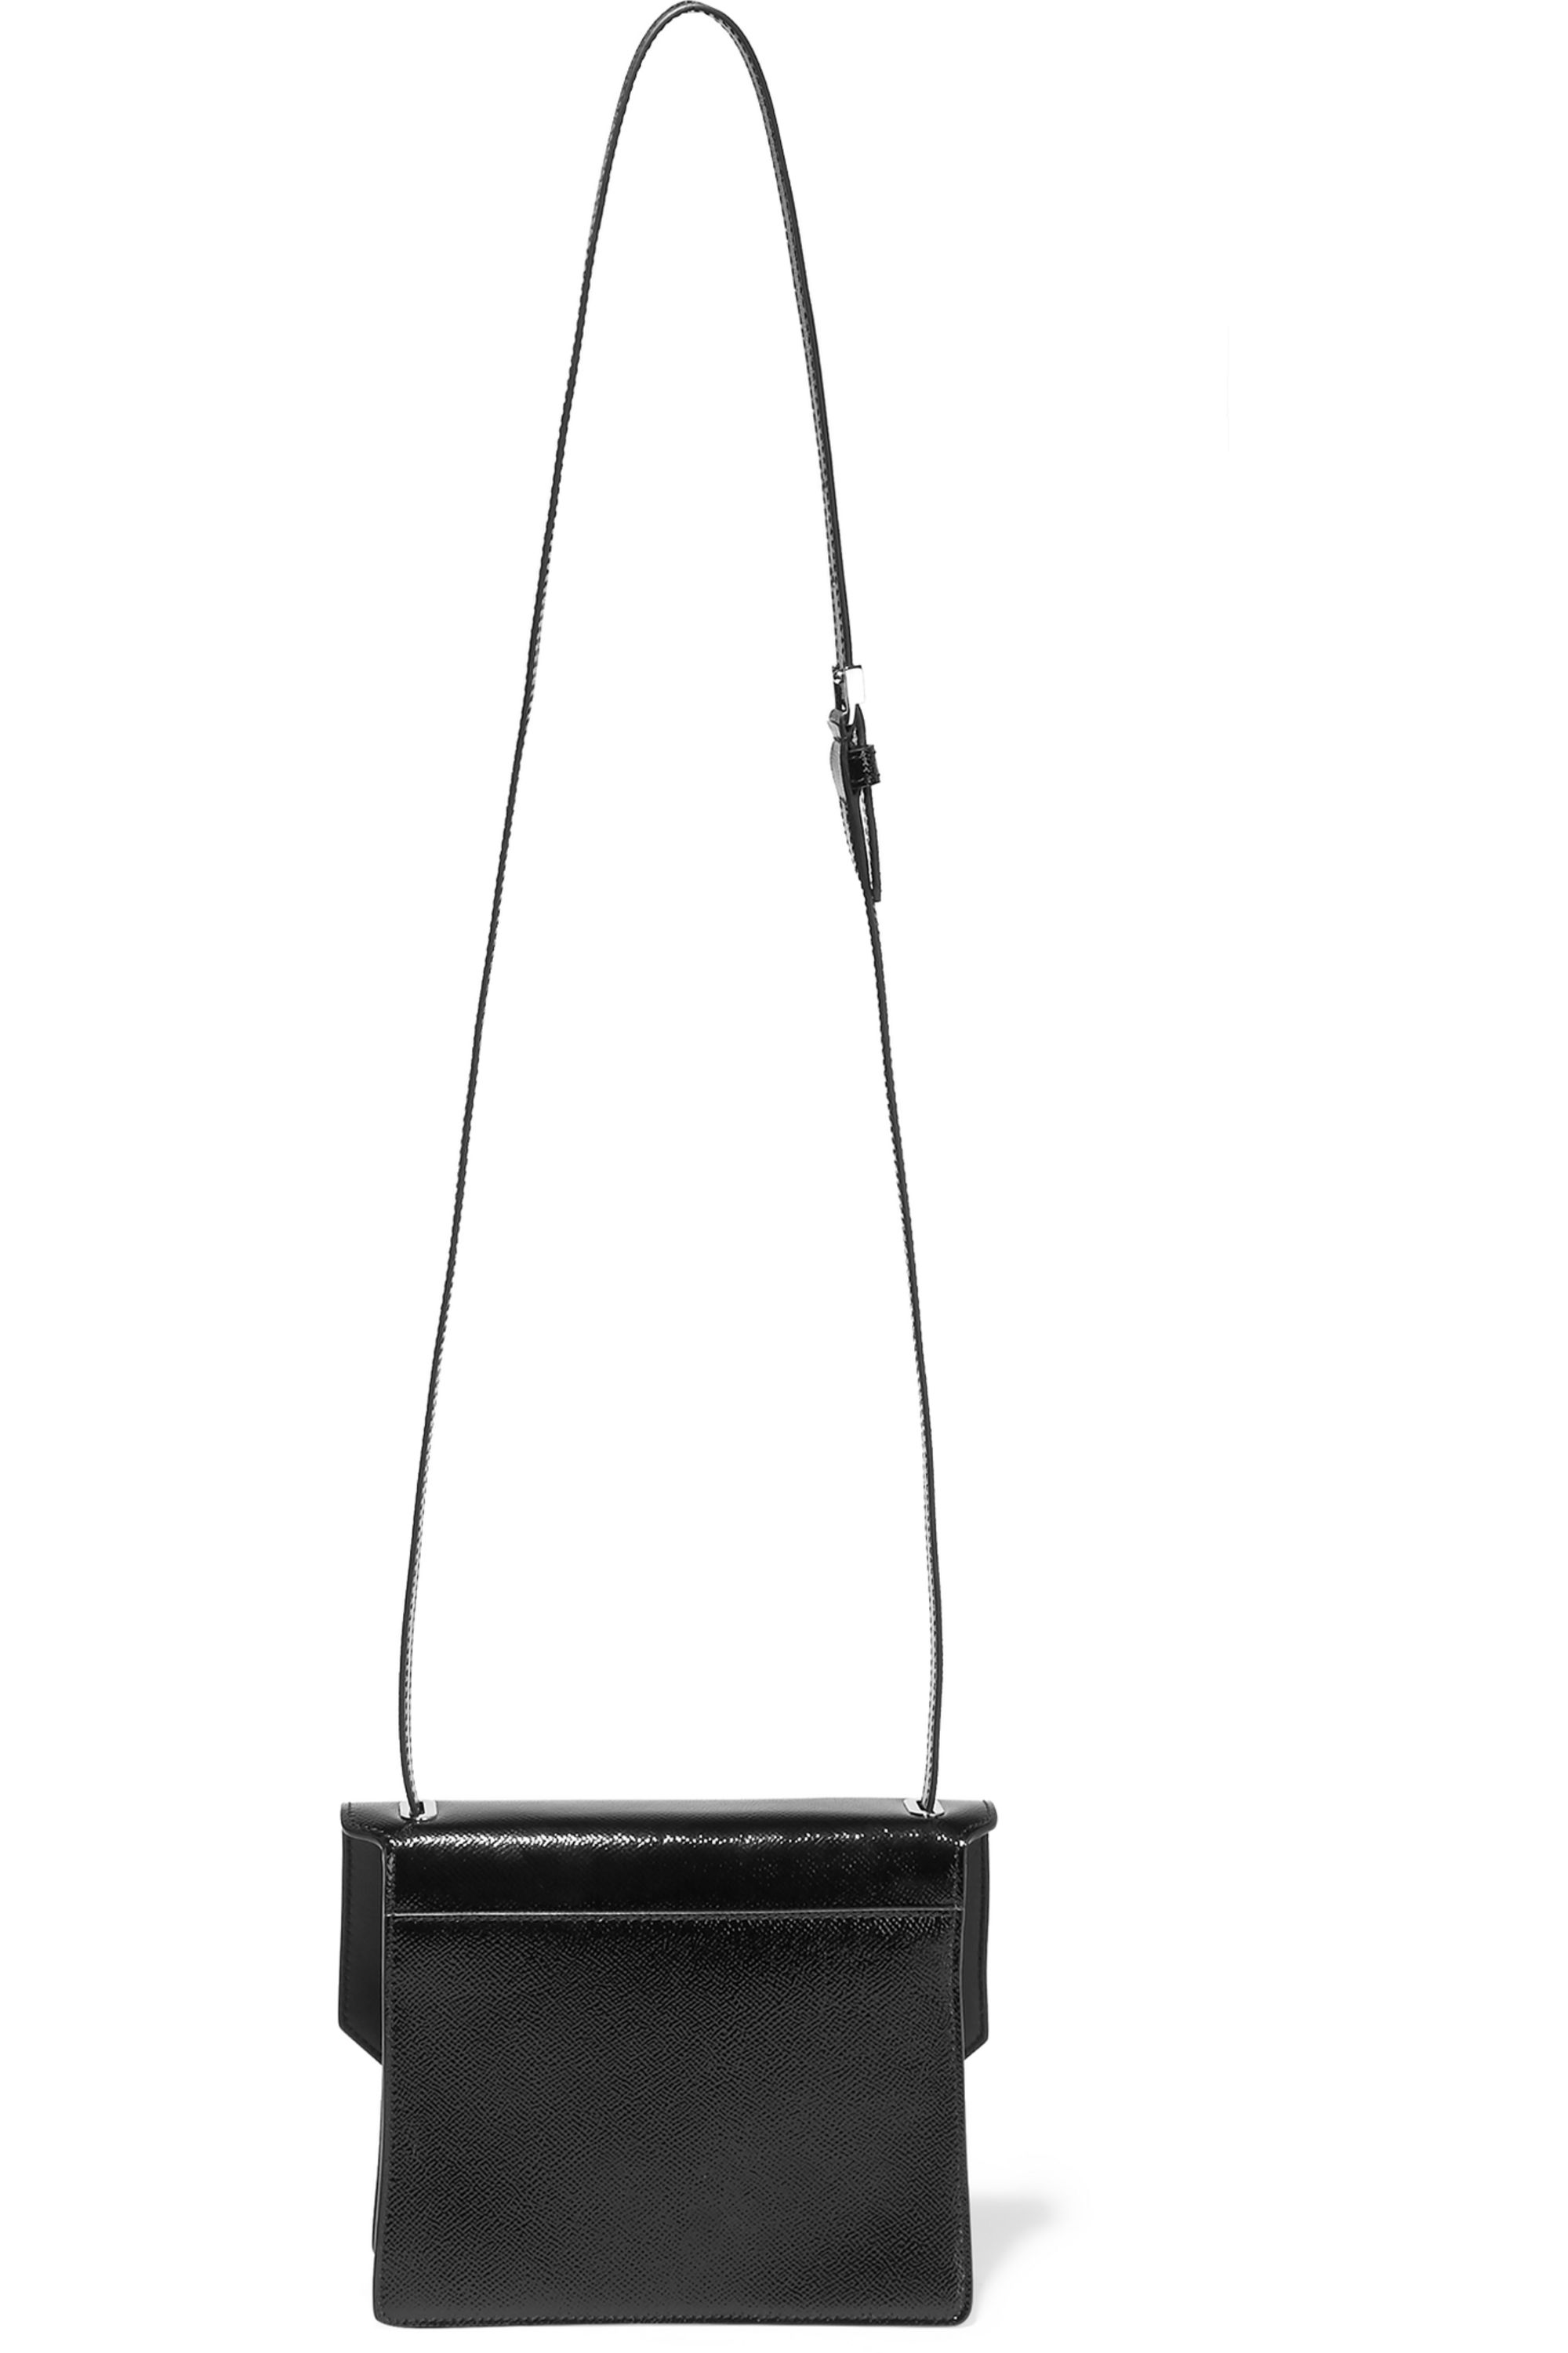 Givenchy Obsedia shoulder bag in textured patent-leather